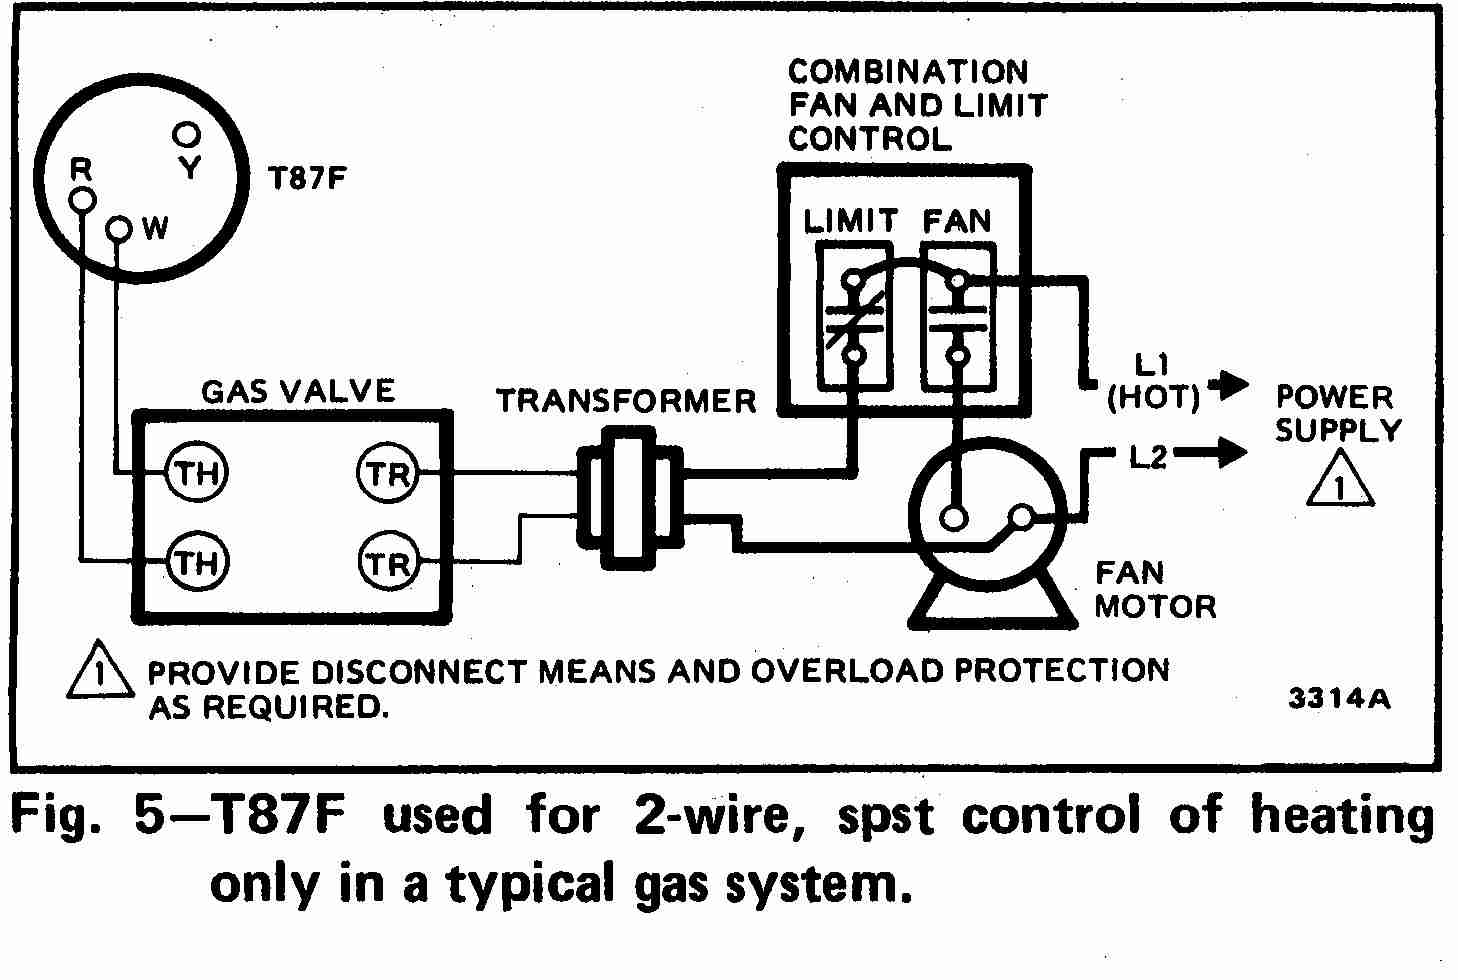 TT_T87F_0002_2Wg_DJF guide to wiring connections for room thermostats oil furnace wiring diagram at reclaimingppi.co